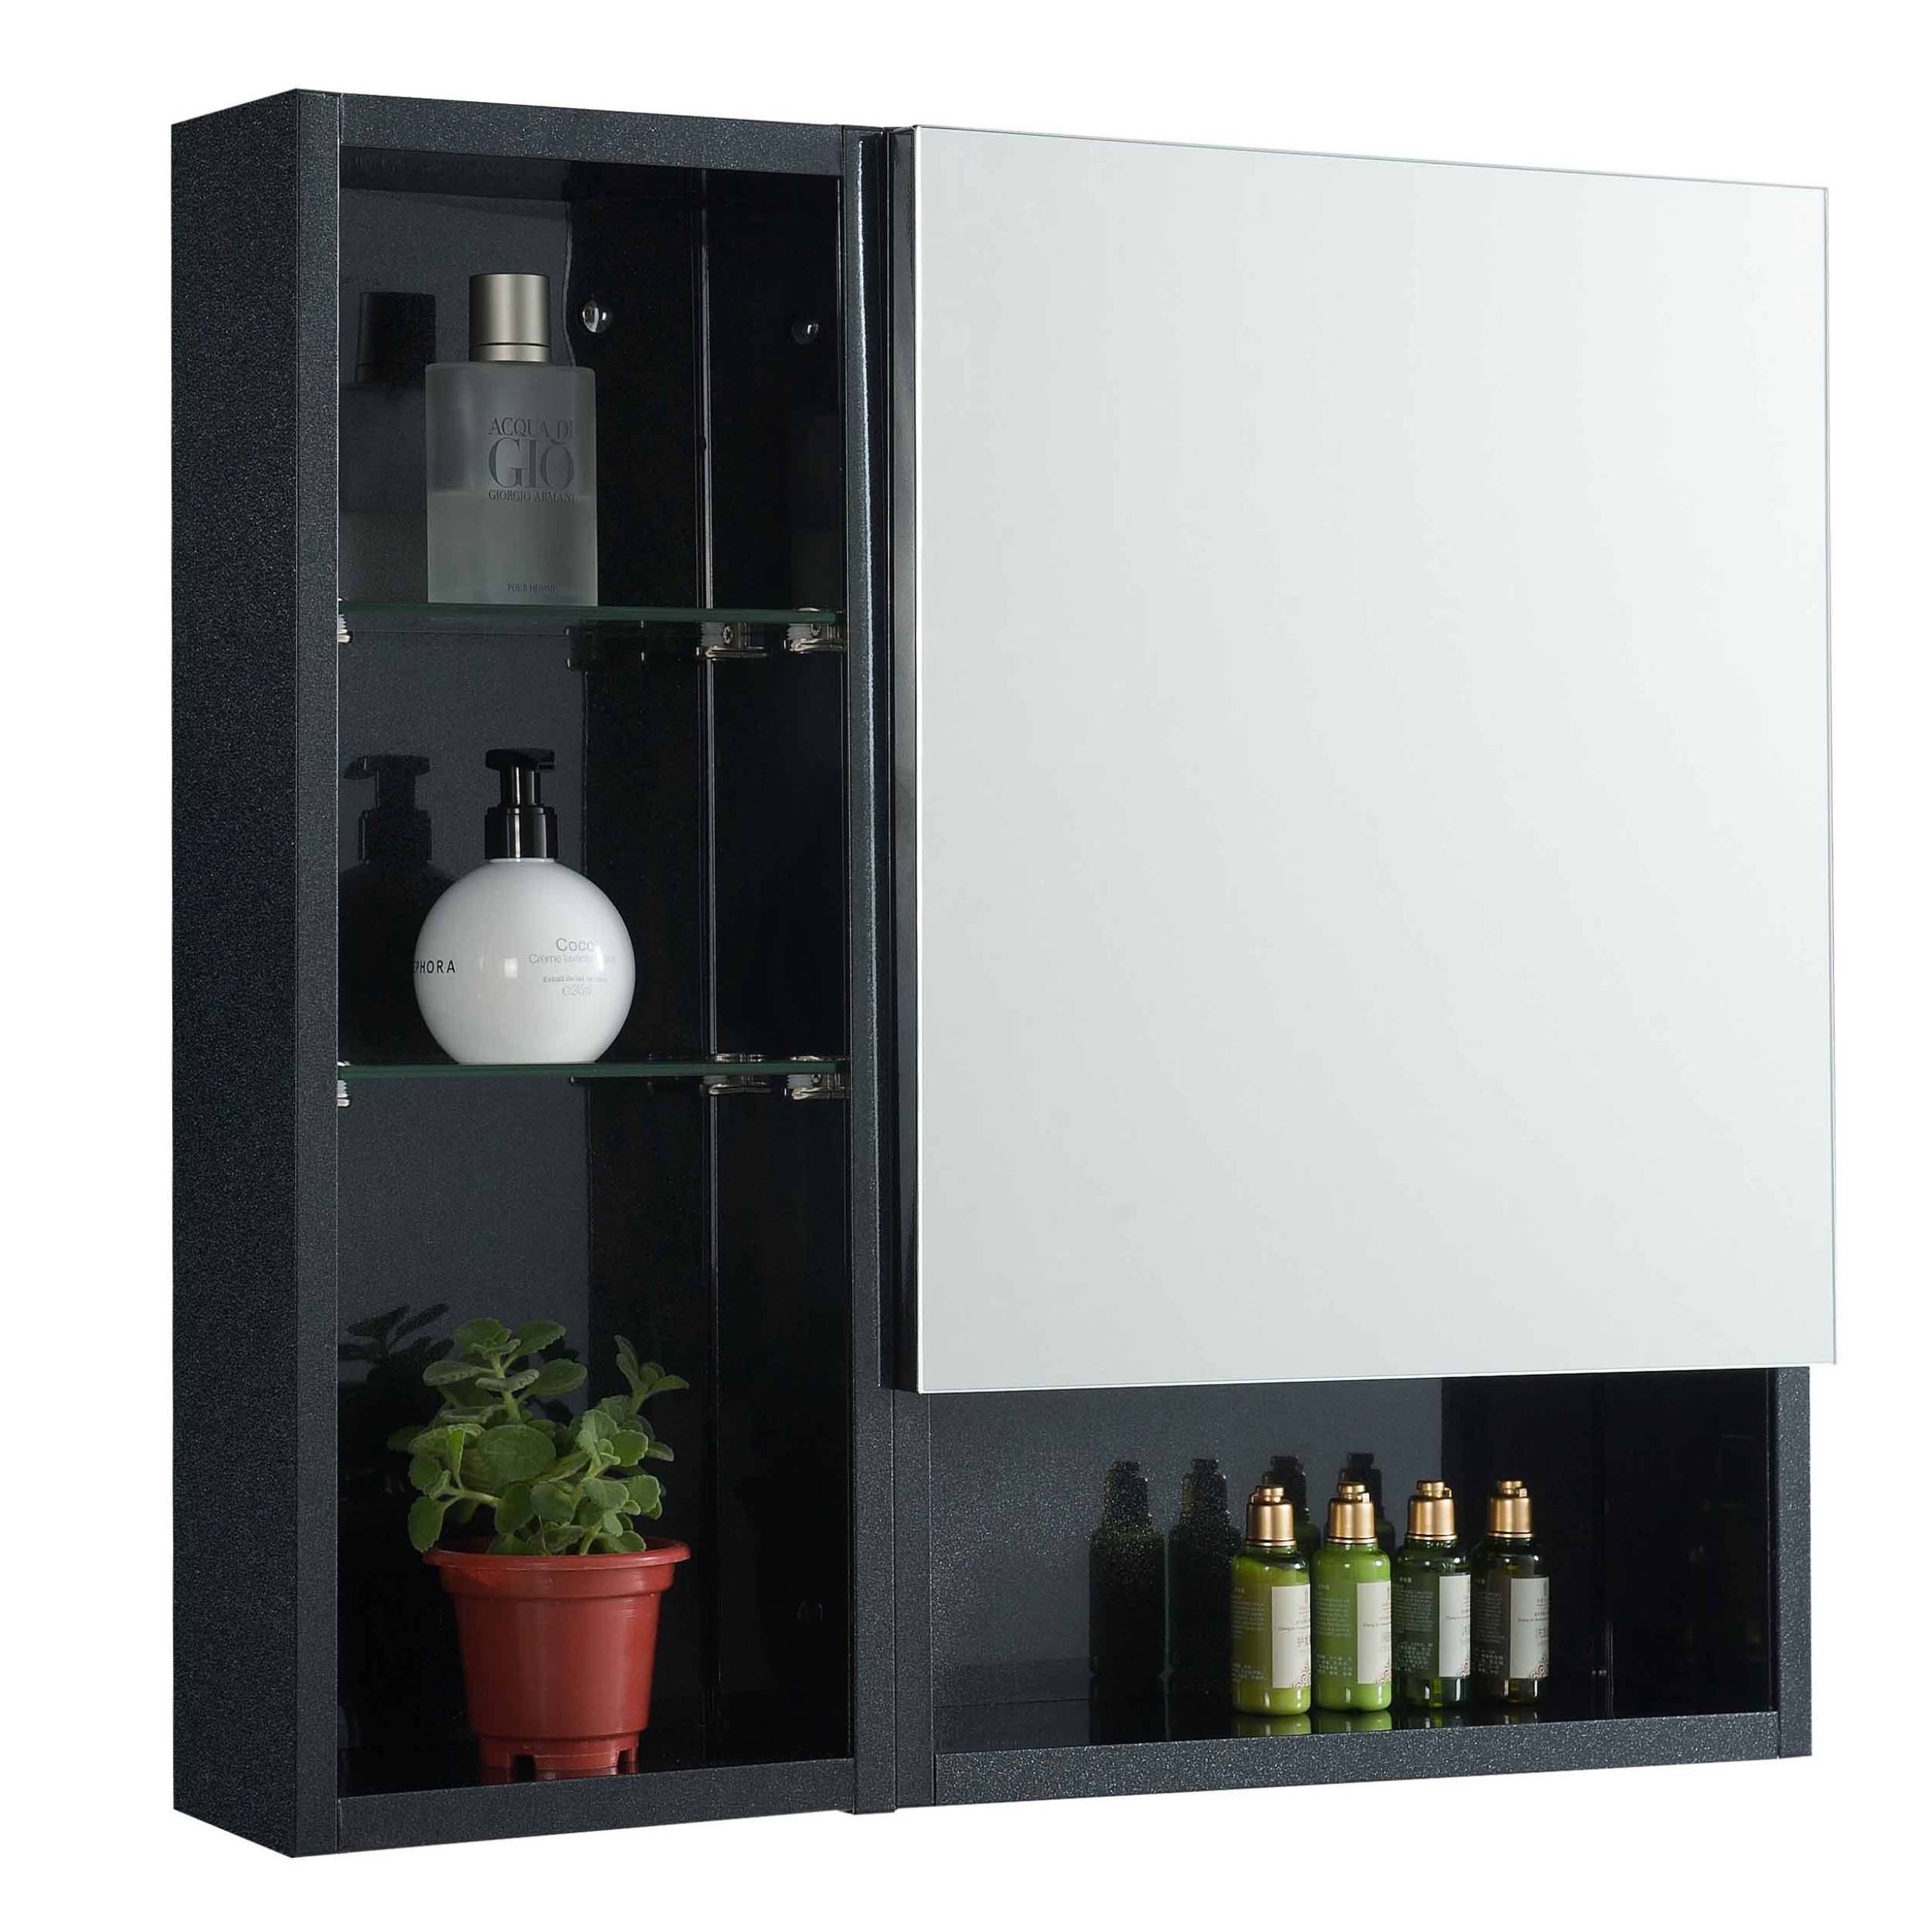 Rubine Bathroom Cabinet - RMC-1440D1S1 Pearl Black | Furniture & Home Décor | FortyTwo